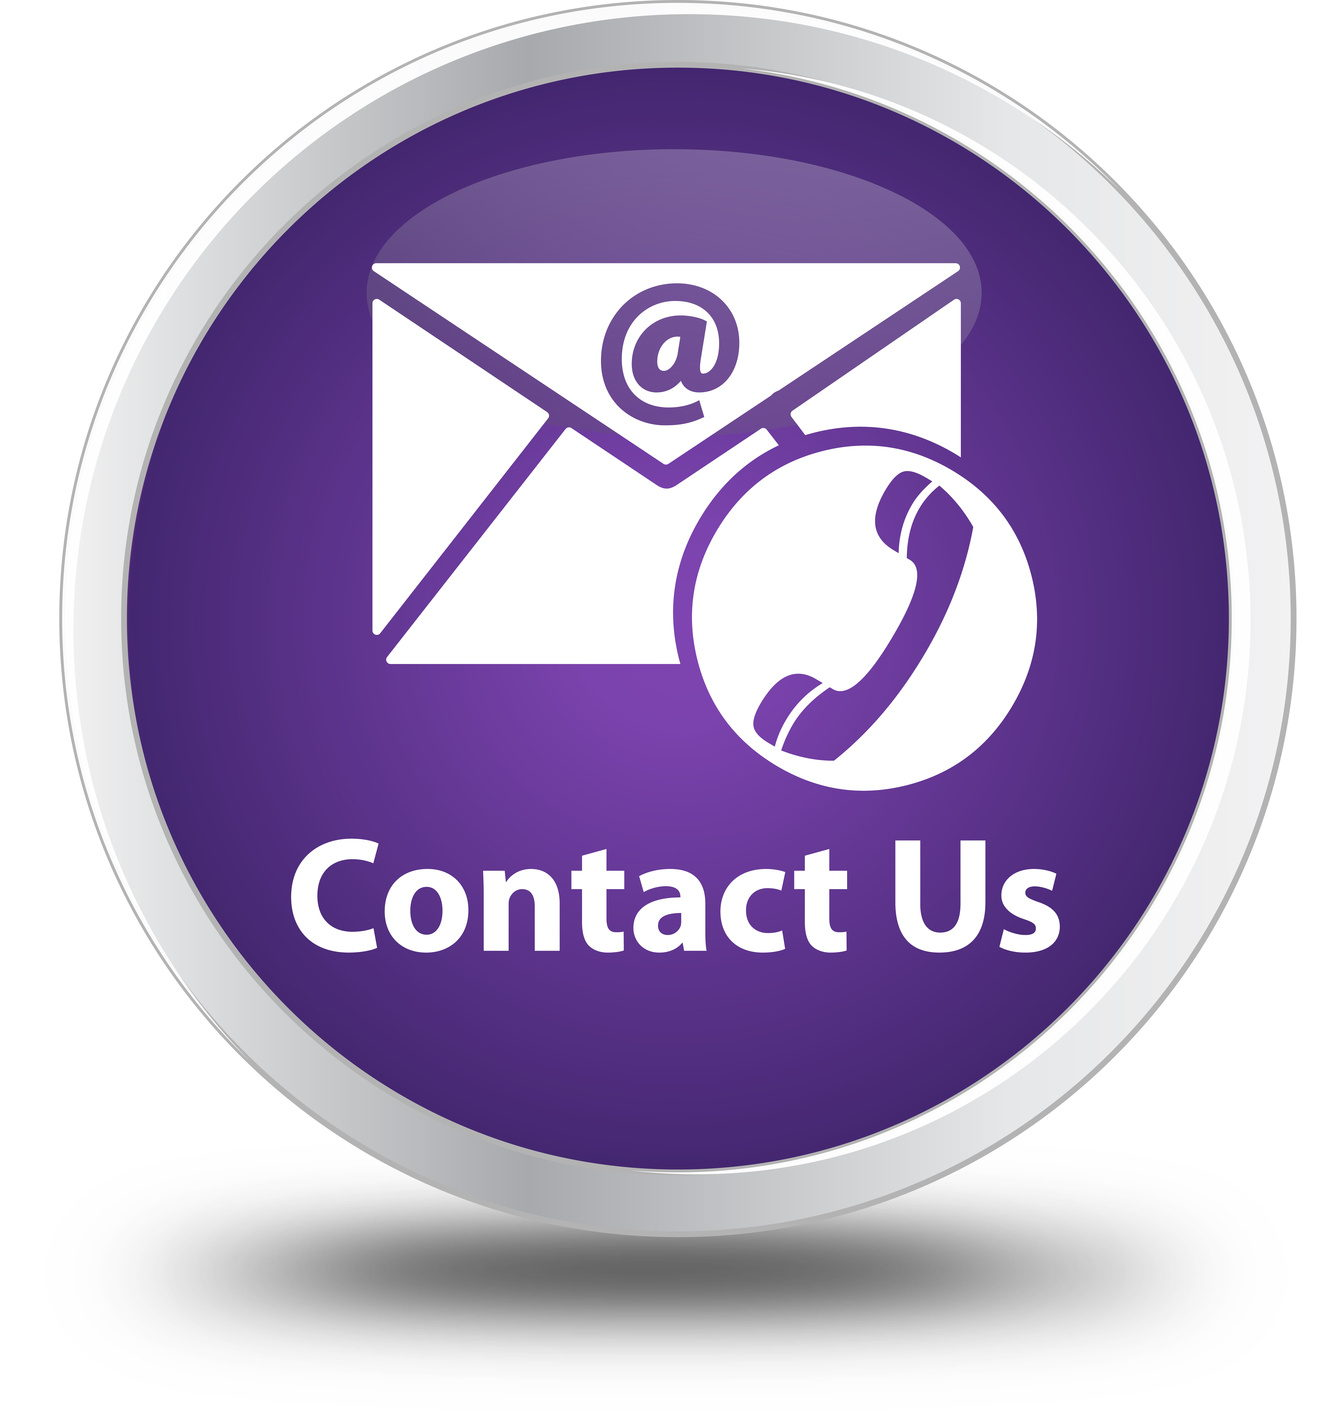 contact-us-pic.jpg